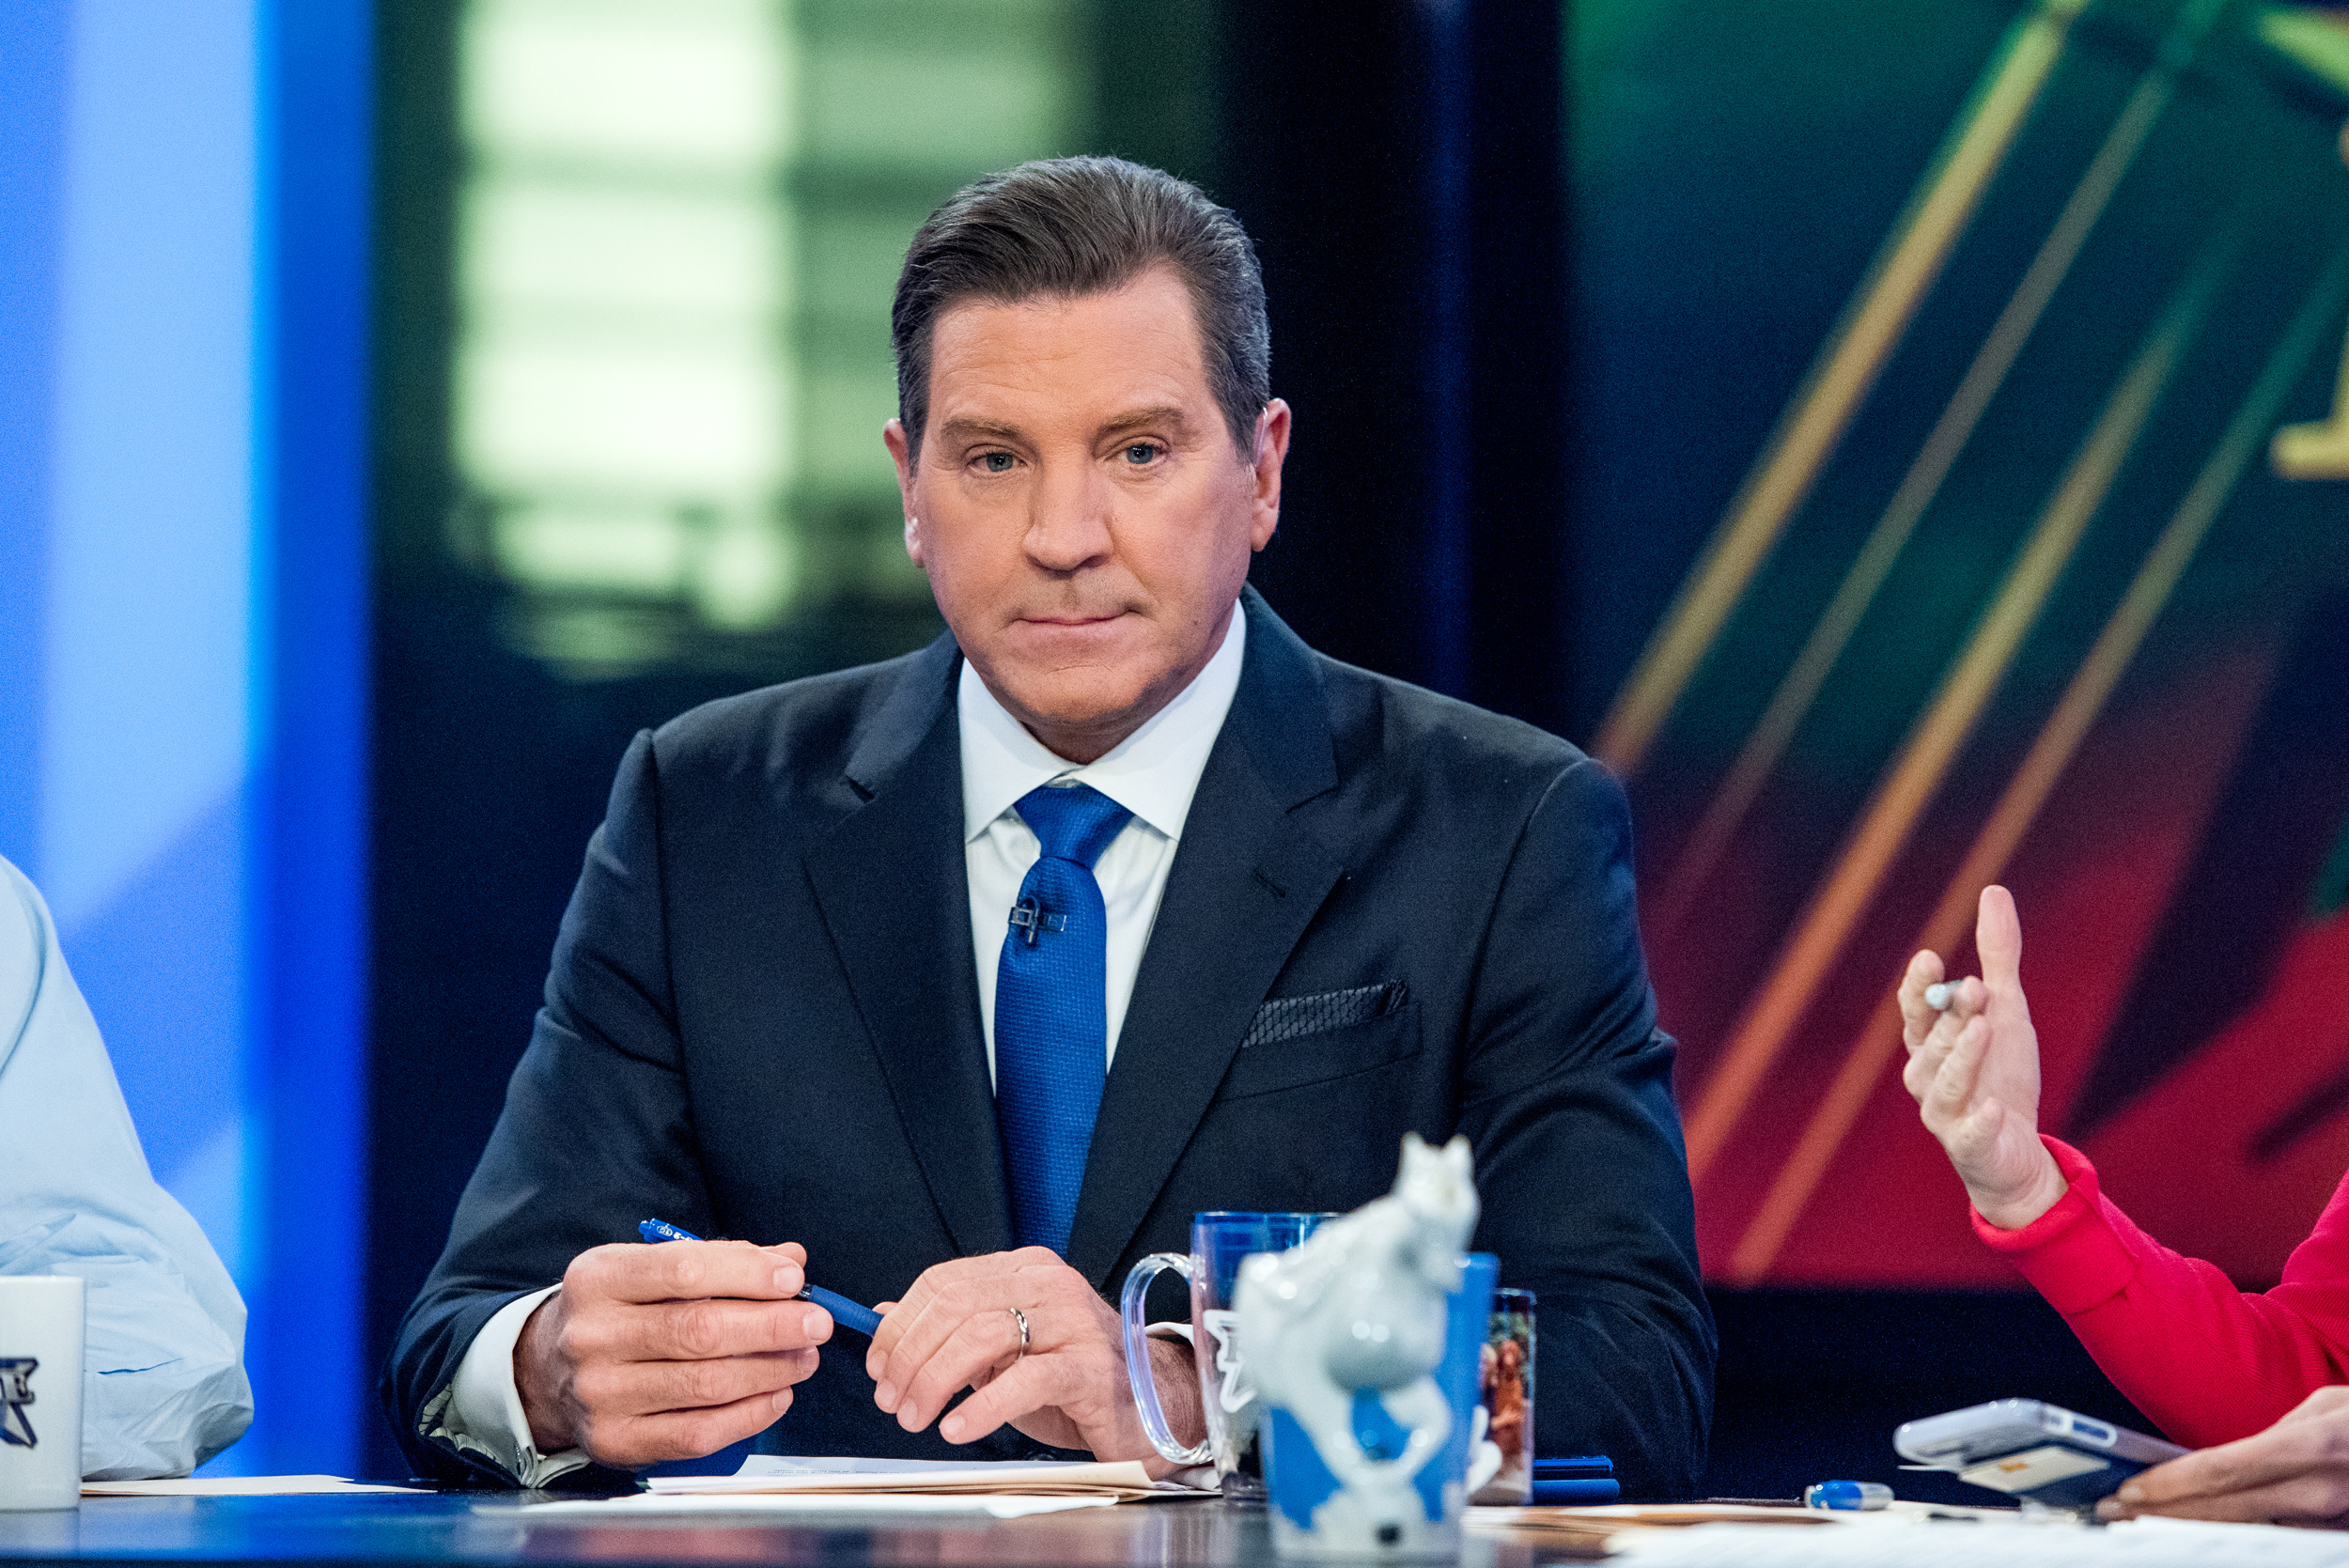 Image: Fox Host Eric Bolling sits on the panel of Fox News Channel's